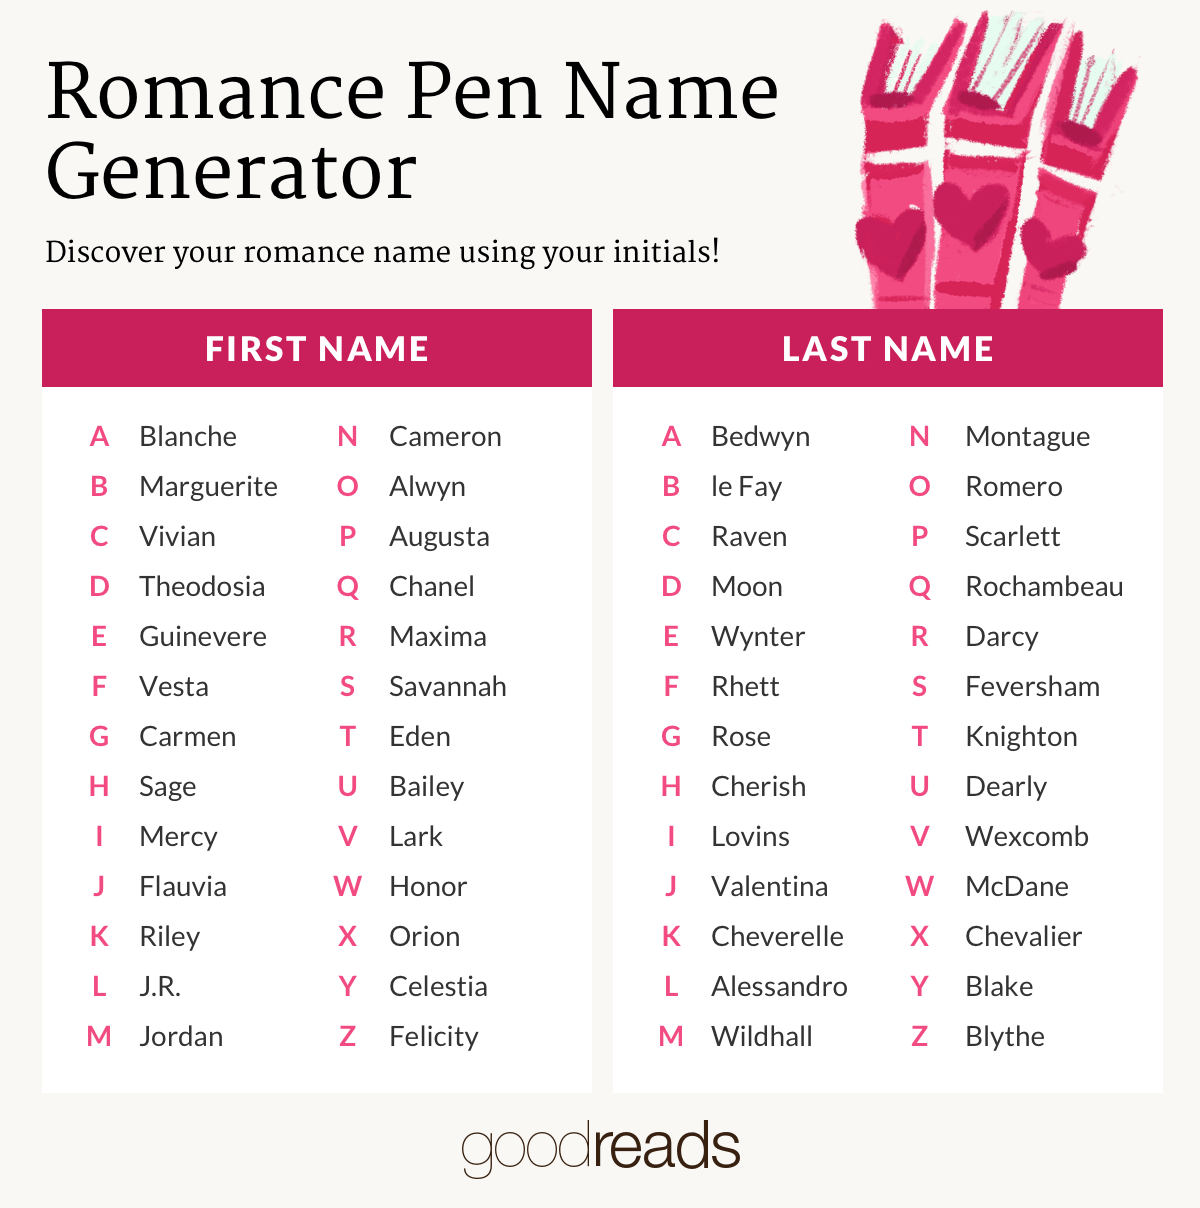 It's Romance Week at Goodreads! Try out their Romance Pen